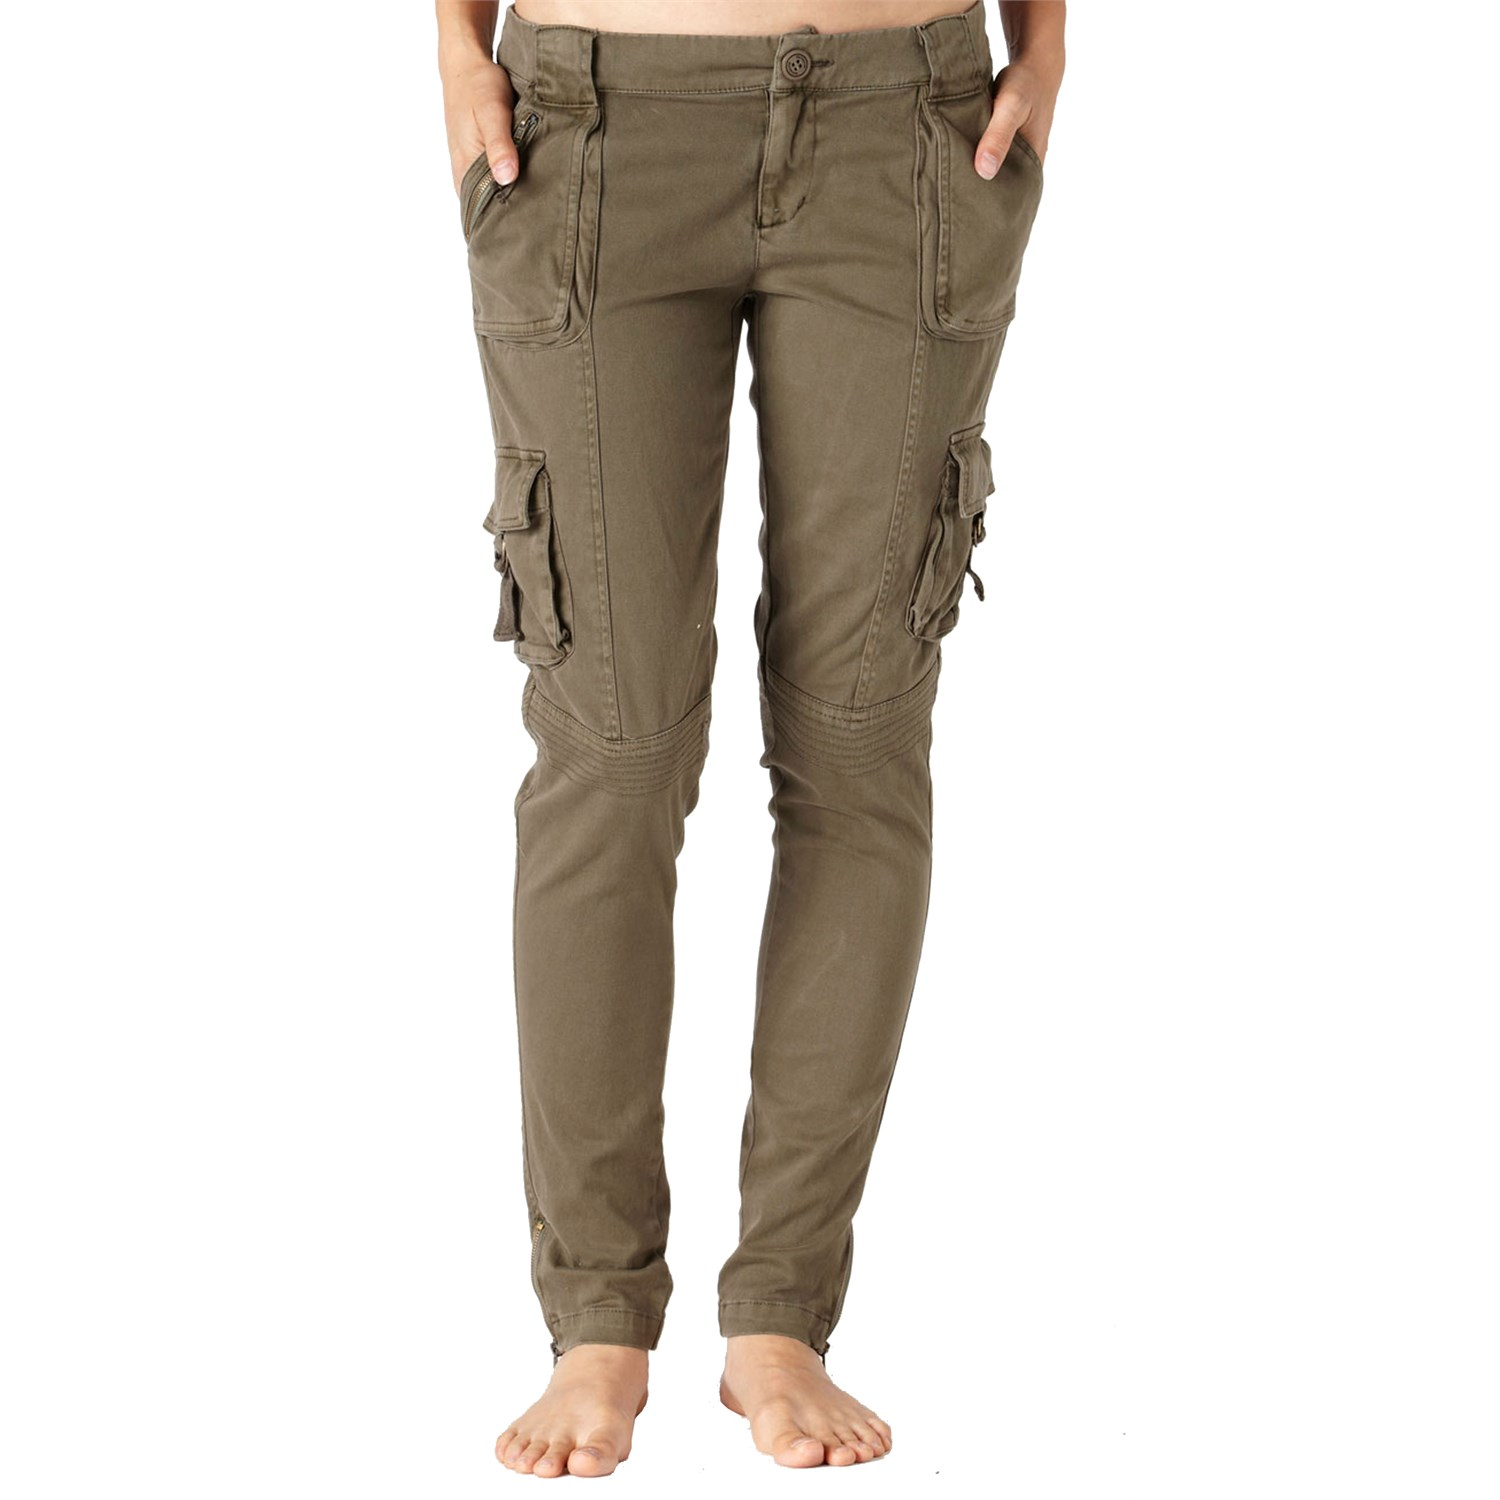 Luxury About Cargo Pants On Pinterest  Cargo Pants Outfit Cargo Pants Women